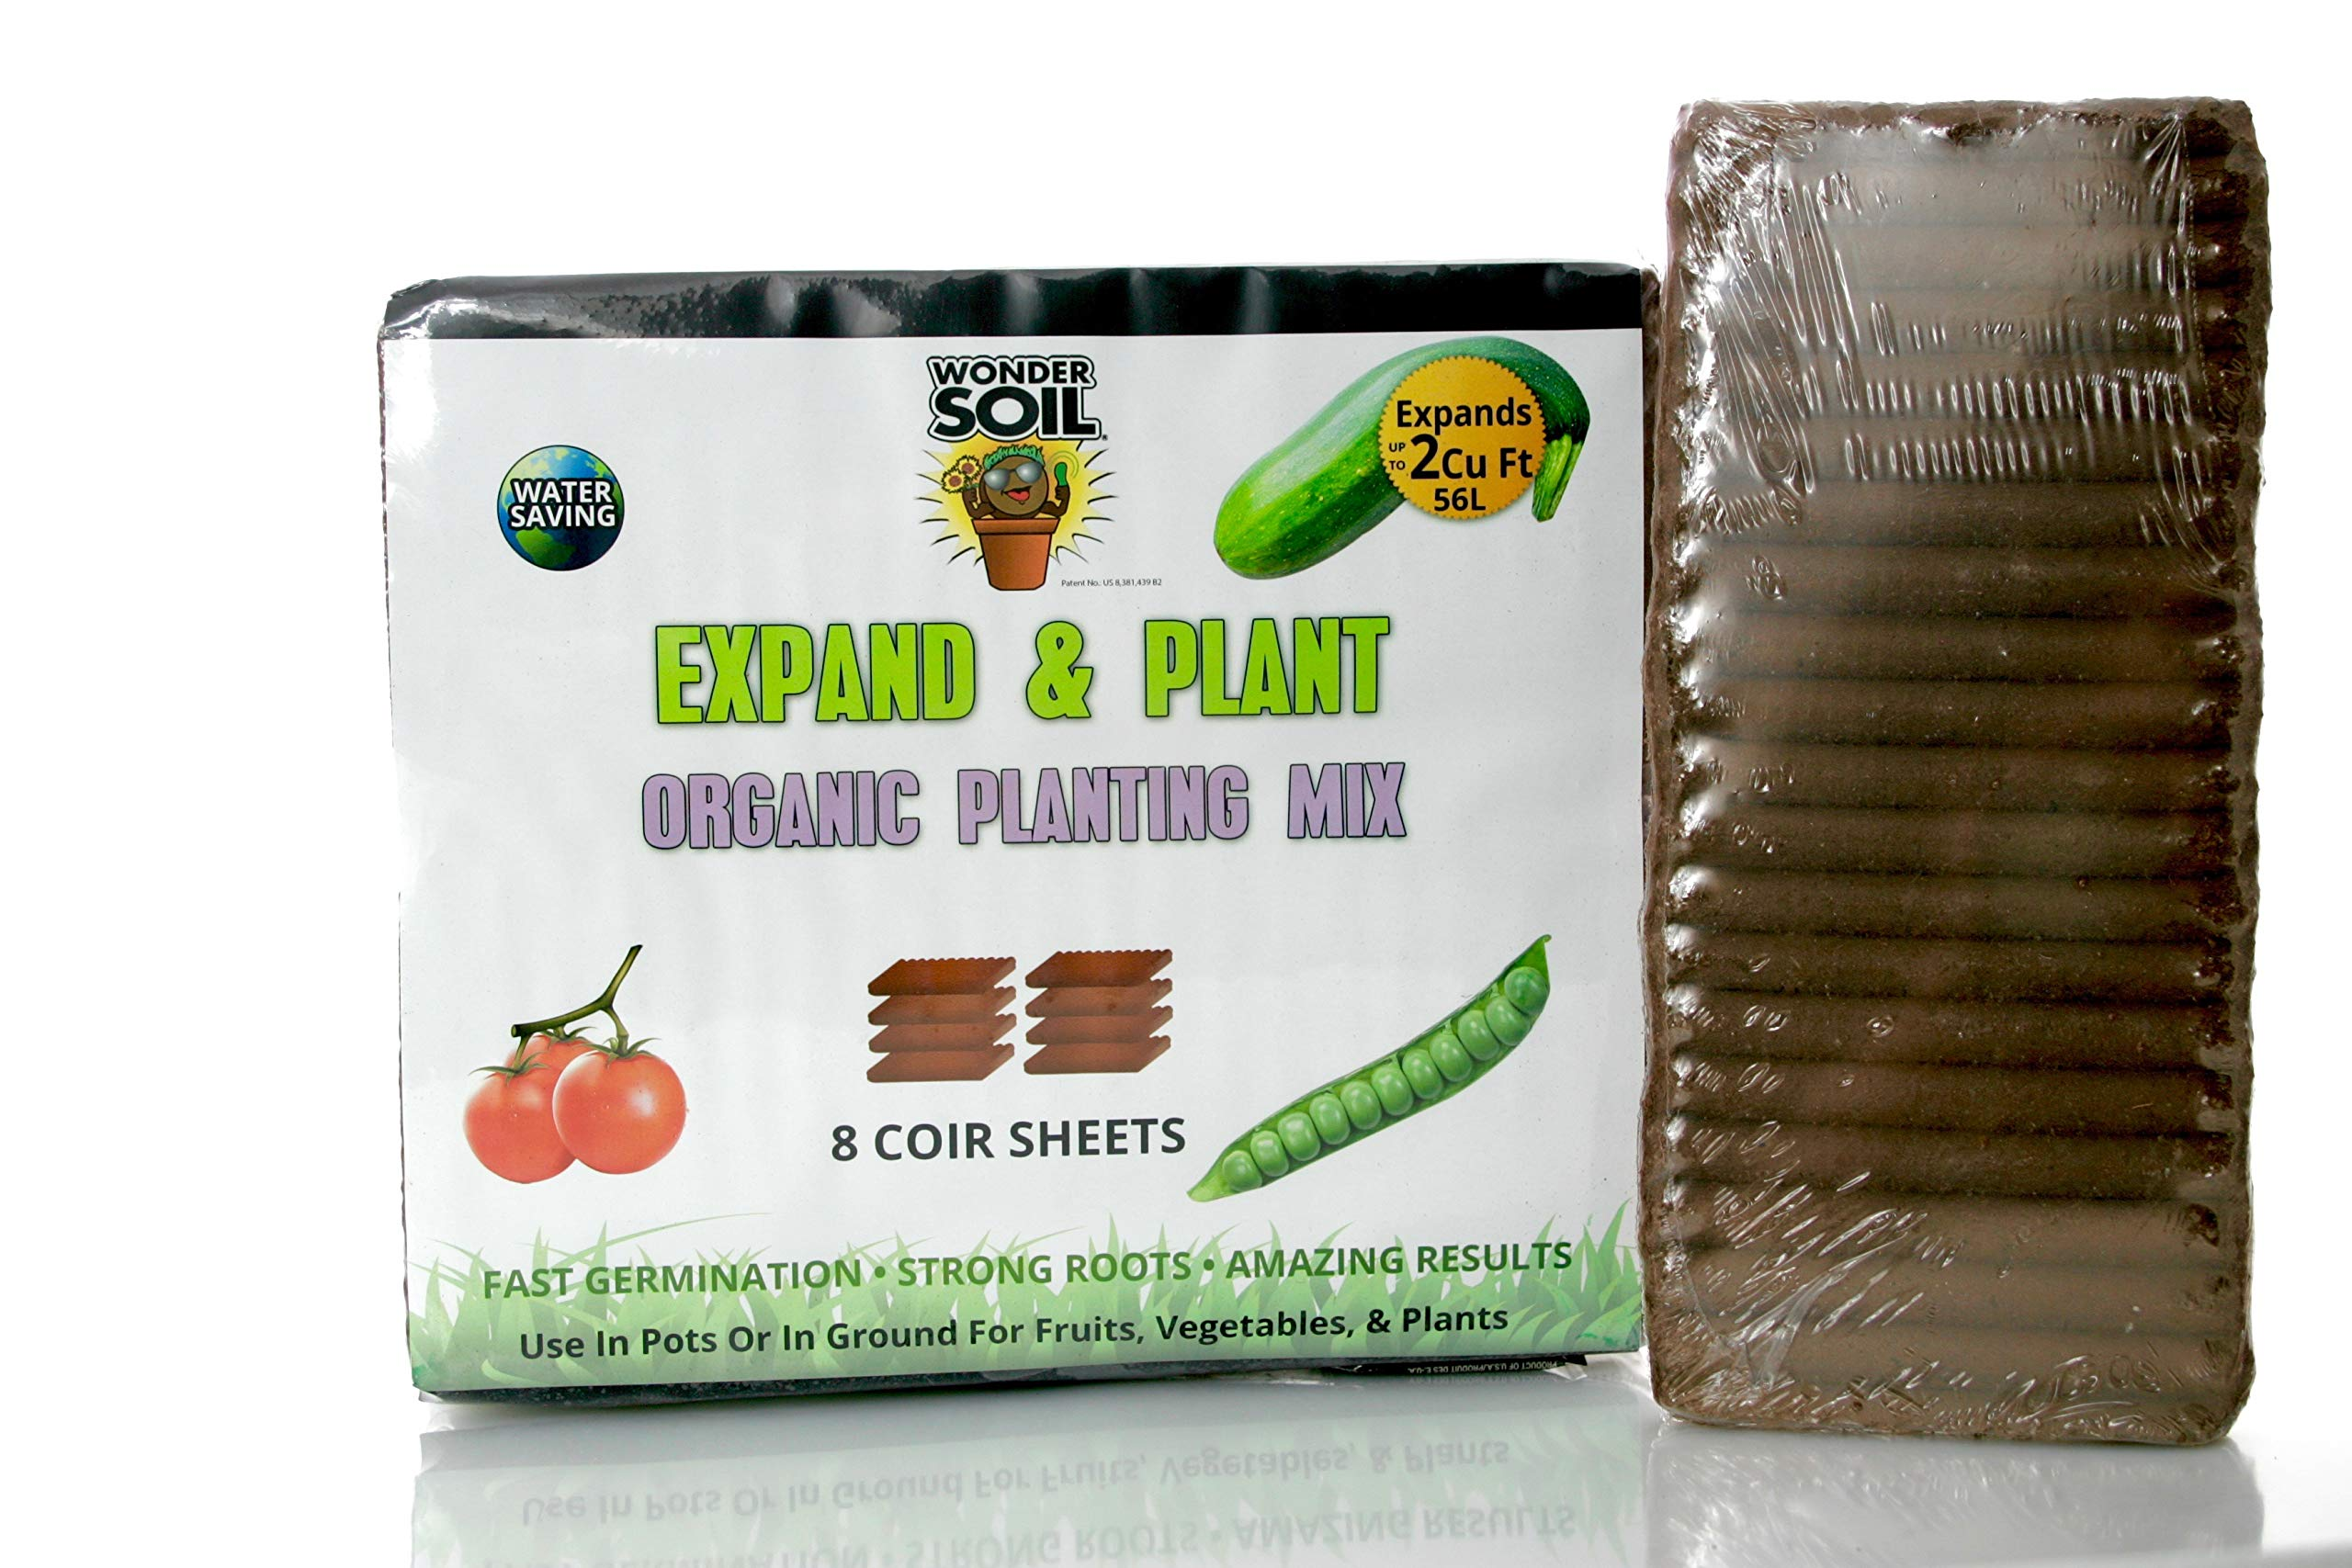 Wonder Soil Organic Expanding Coco Coir Living Soil Sheets - 8 Sheets Expand to 2 Cubic Feet of Nutrient Rich Soil – Seed Starting, Microgreens, Flowers, Herbs, Gardening – OMRI Ingredients